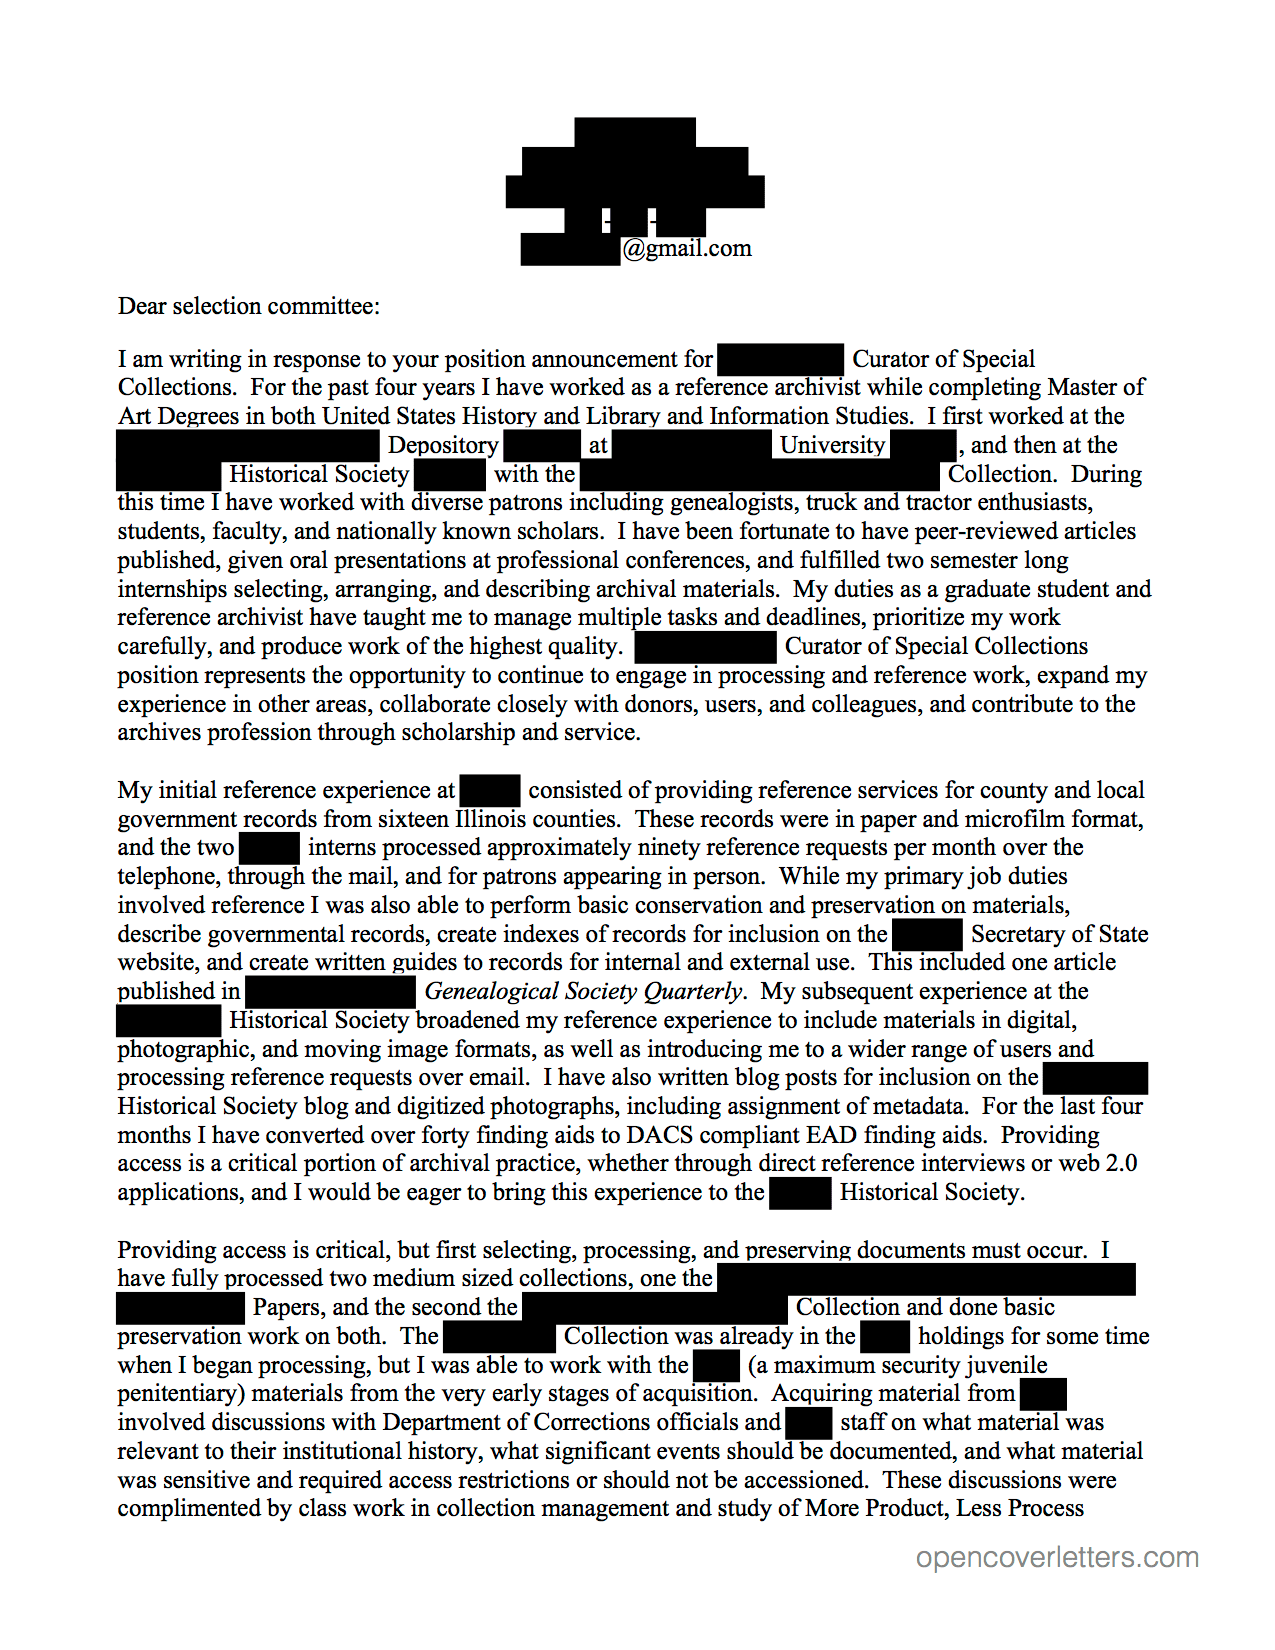 Archives & Museums Open Cover Letters